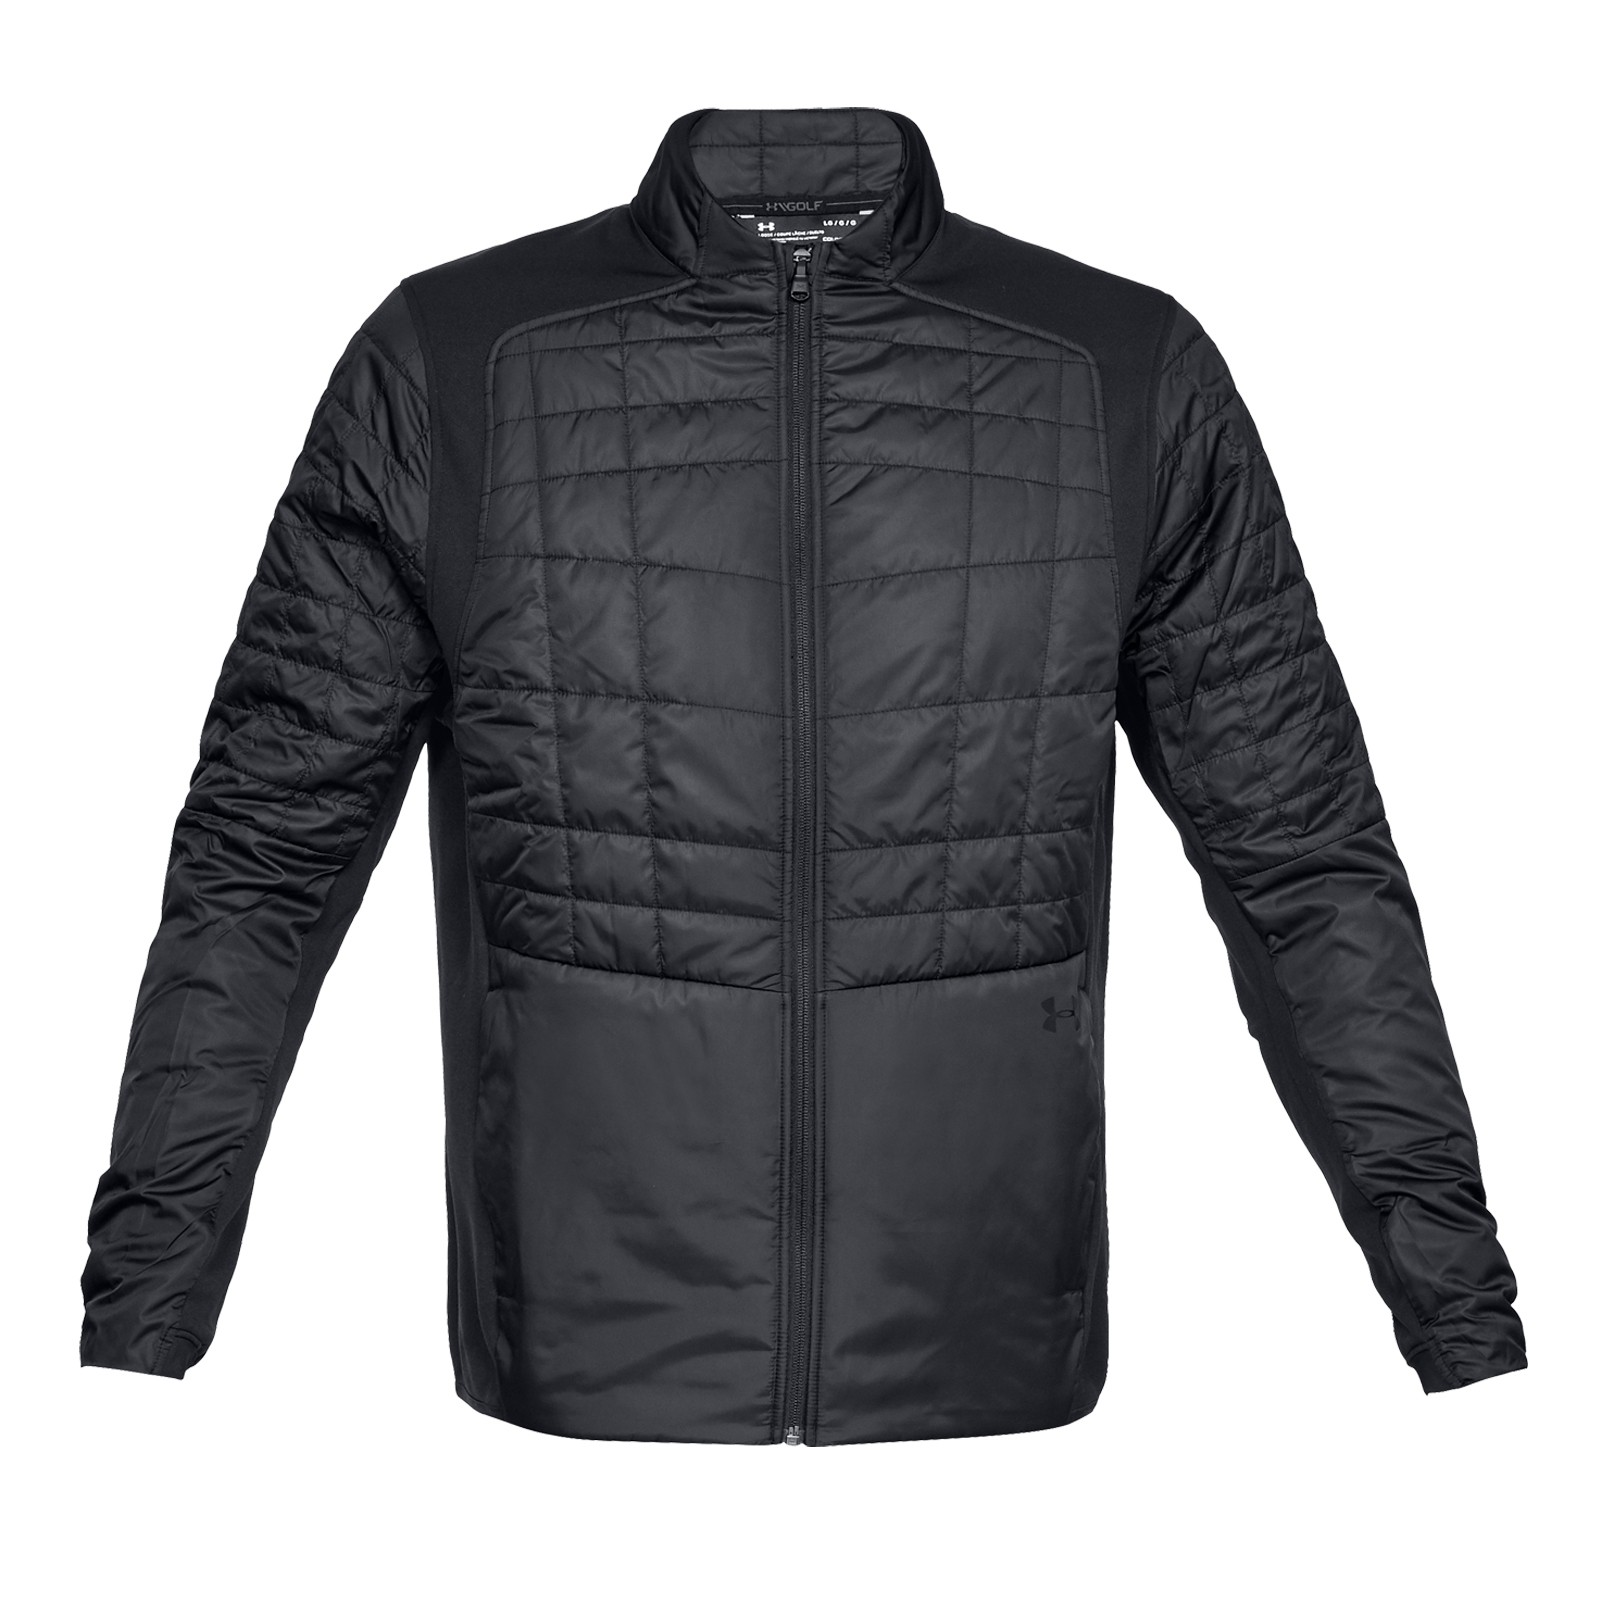 3d7e91462b Under Armour Storm Insulated Jacket